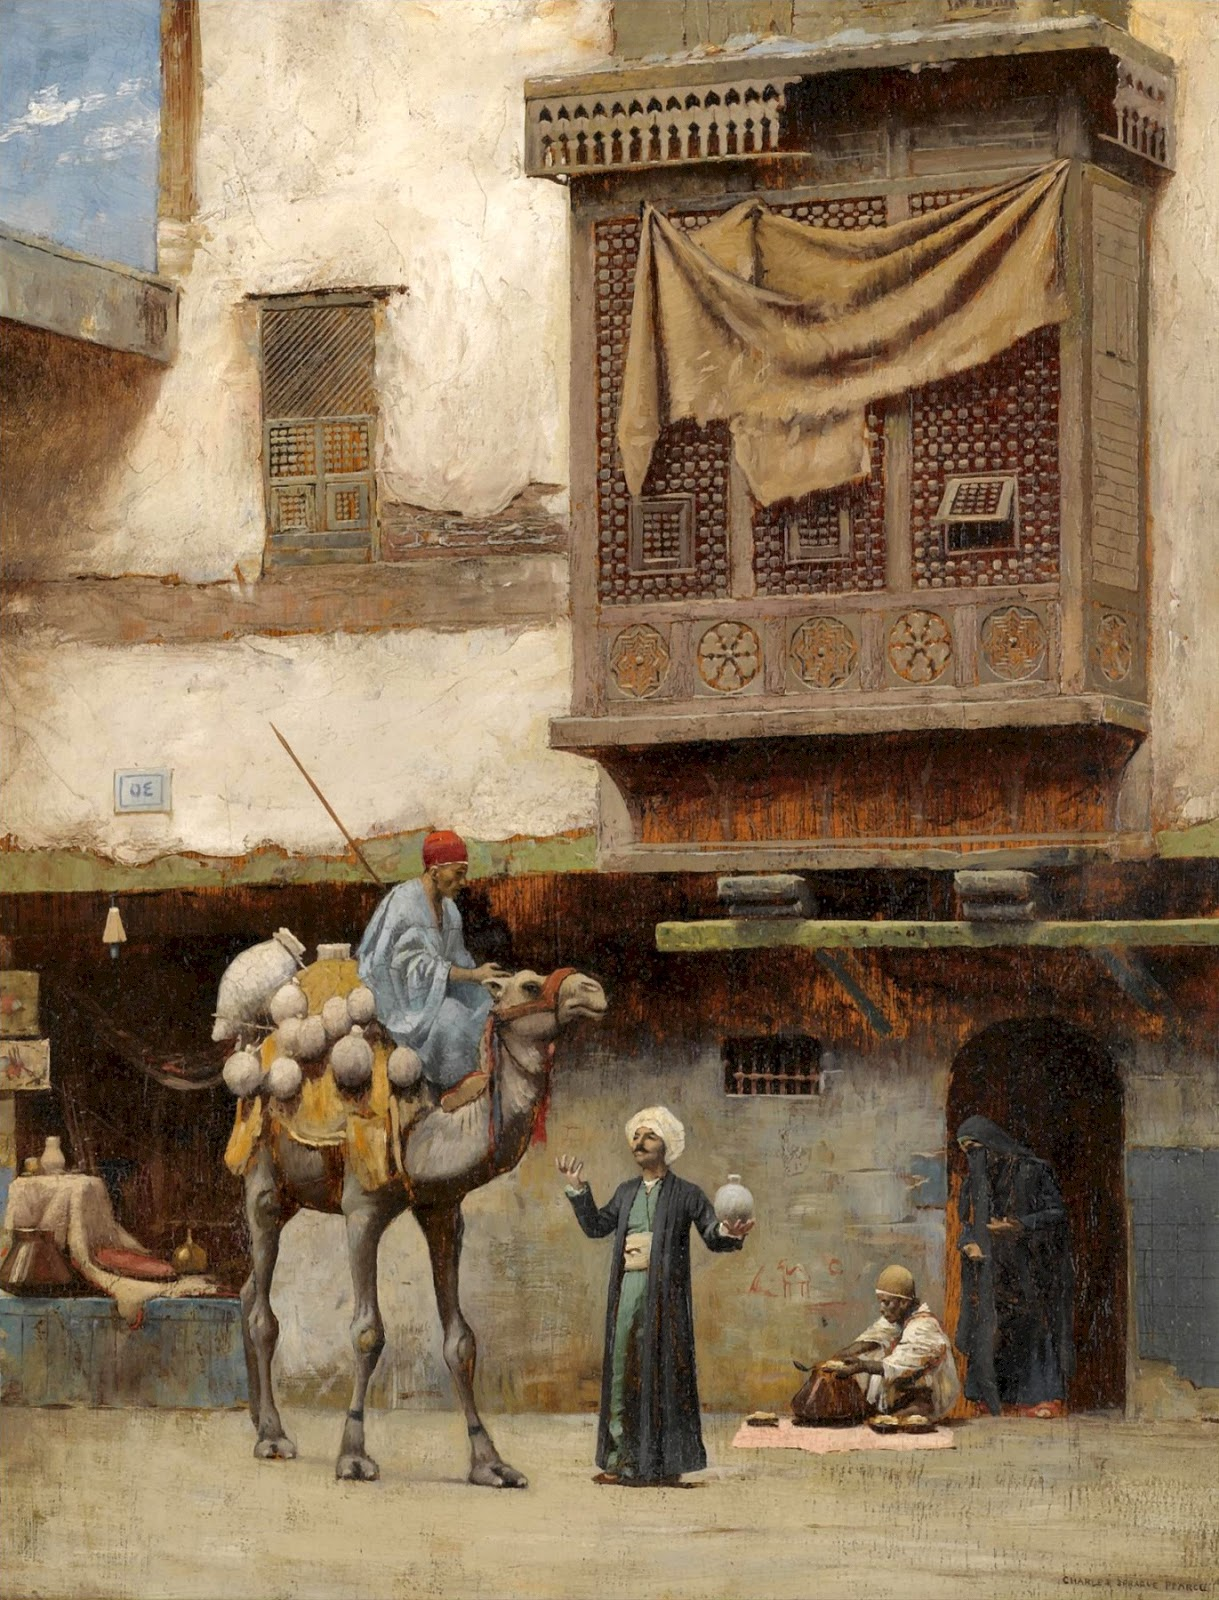 Charles  Sprague  Pearce  pottery  seller  in  the  old  city  of  cairo